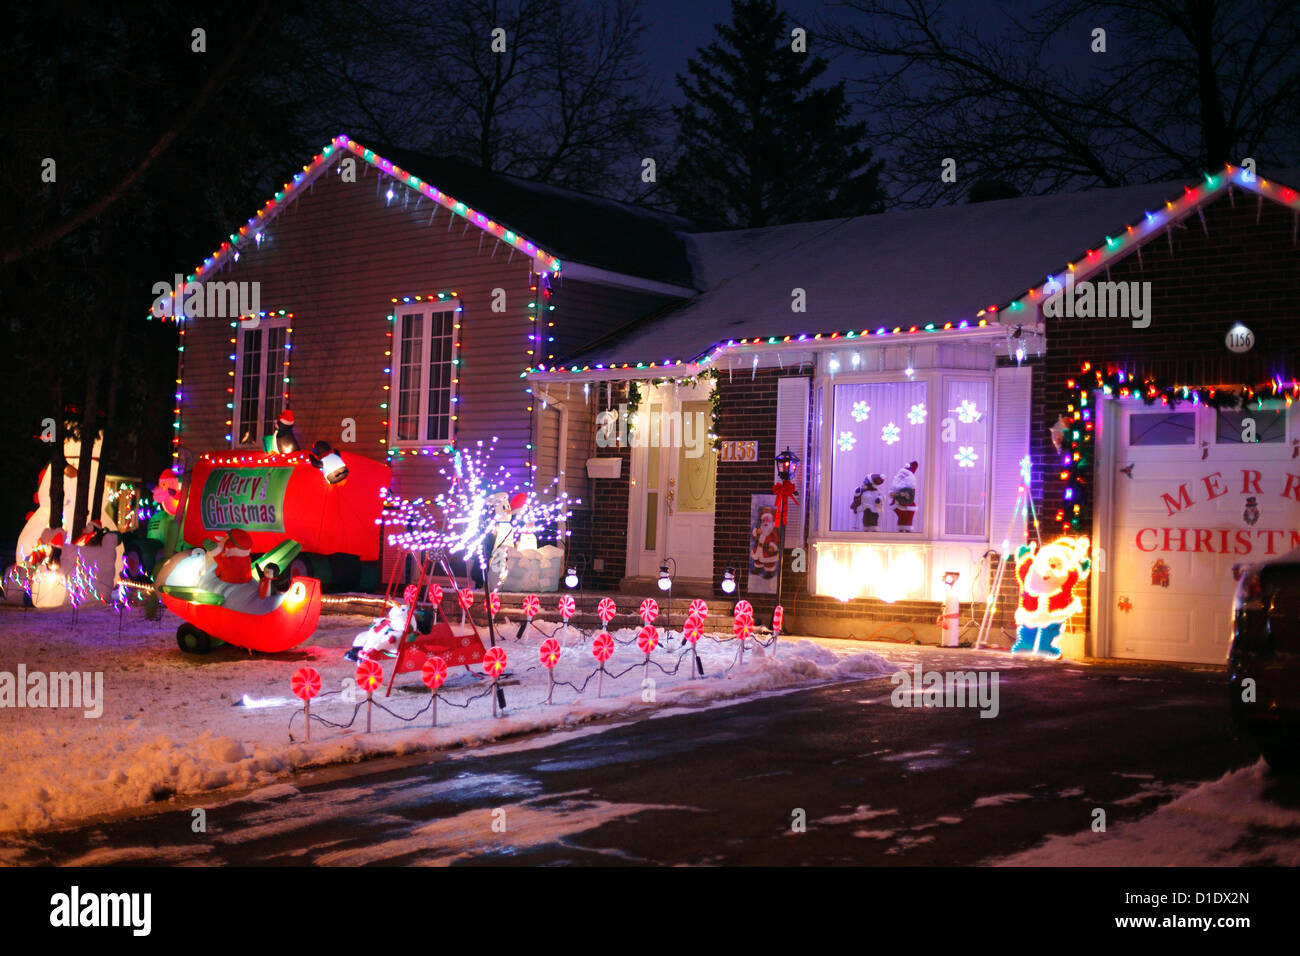 Christmas lights house decorations stock photos